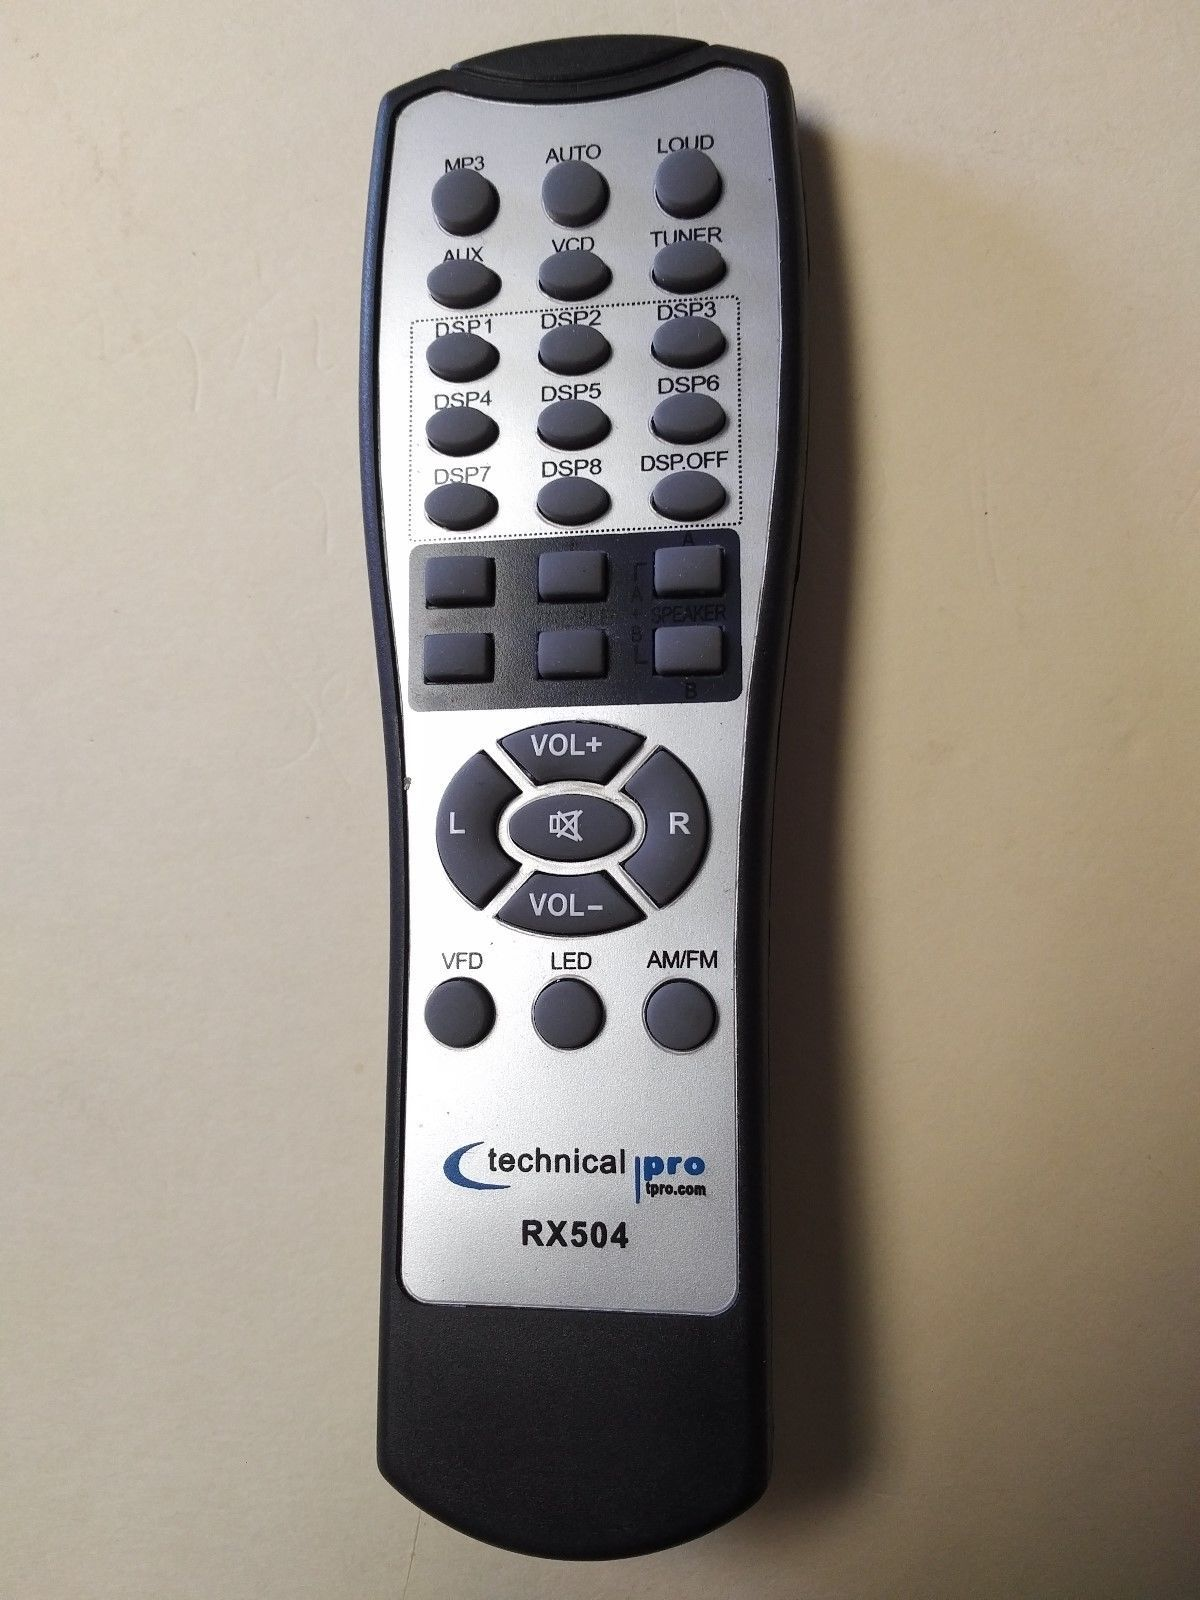 Original Technical Pro REMOTE CONTROL for RX503 RX504 and others